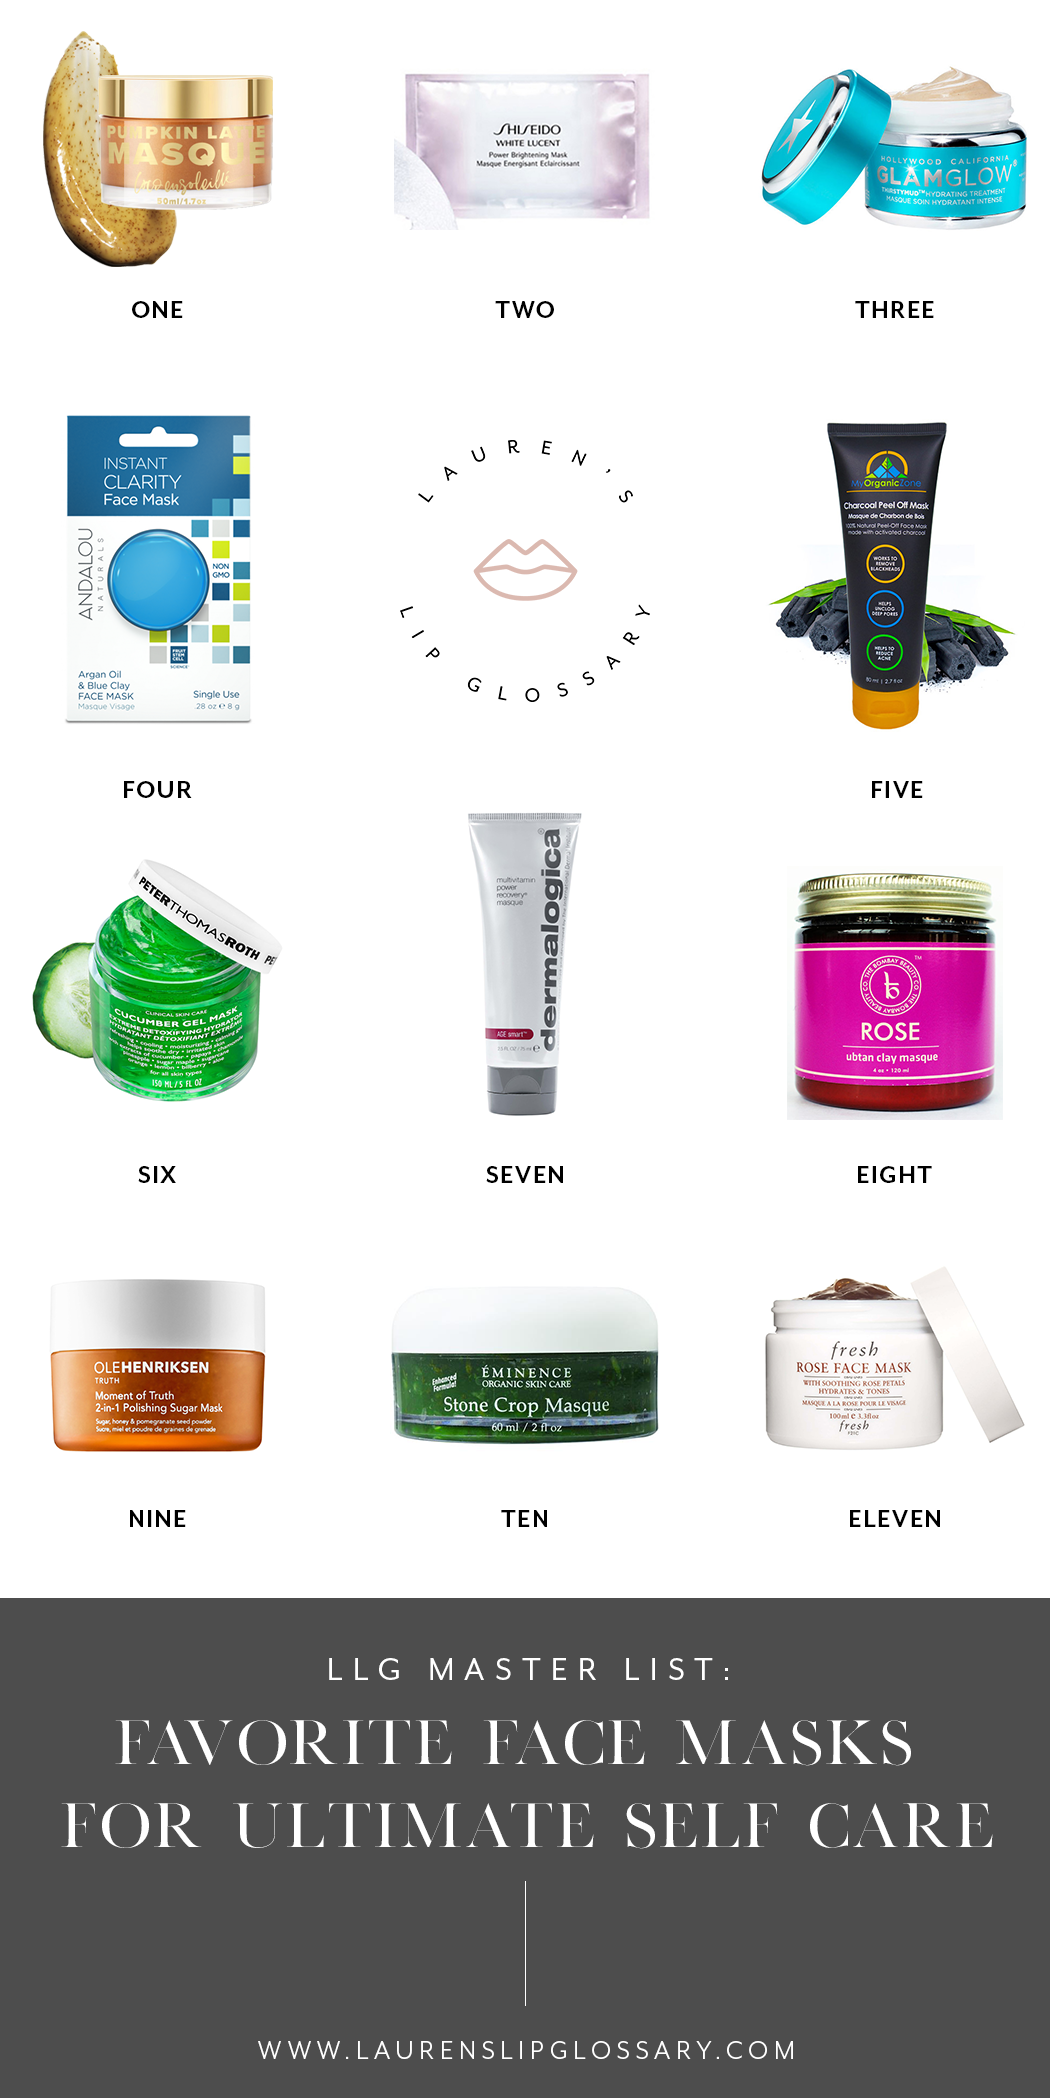 Favorite Face Masks